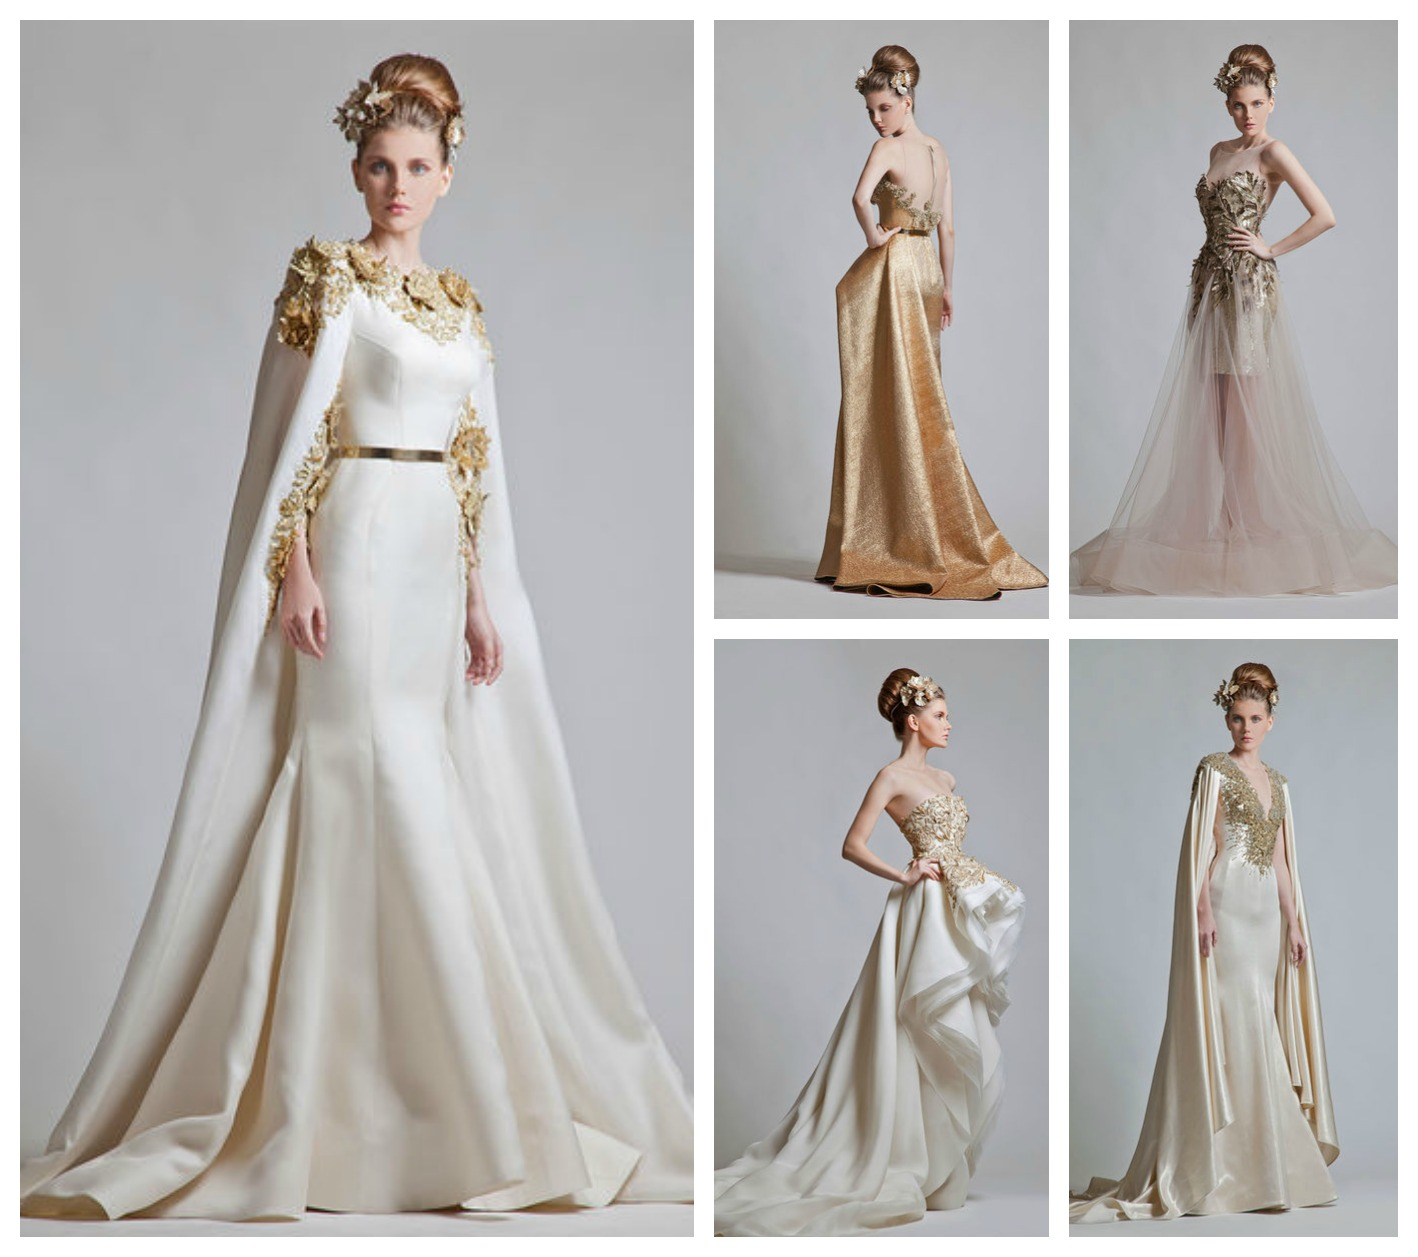 Roman Wedding Dress - Gown And Dress Gallery